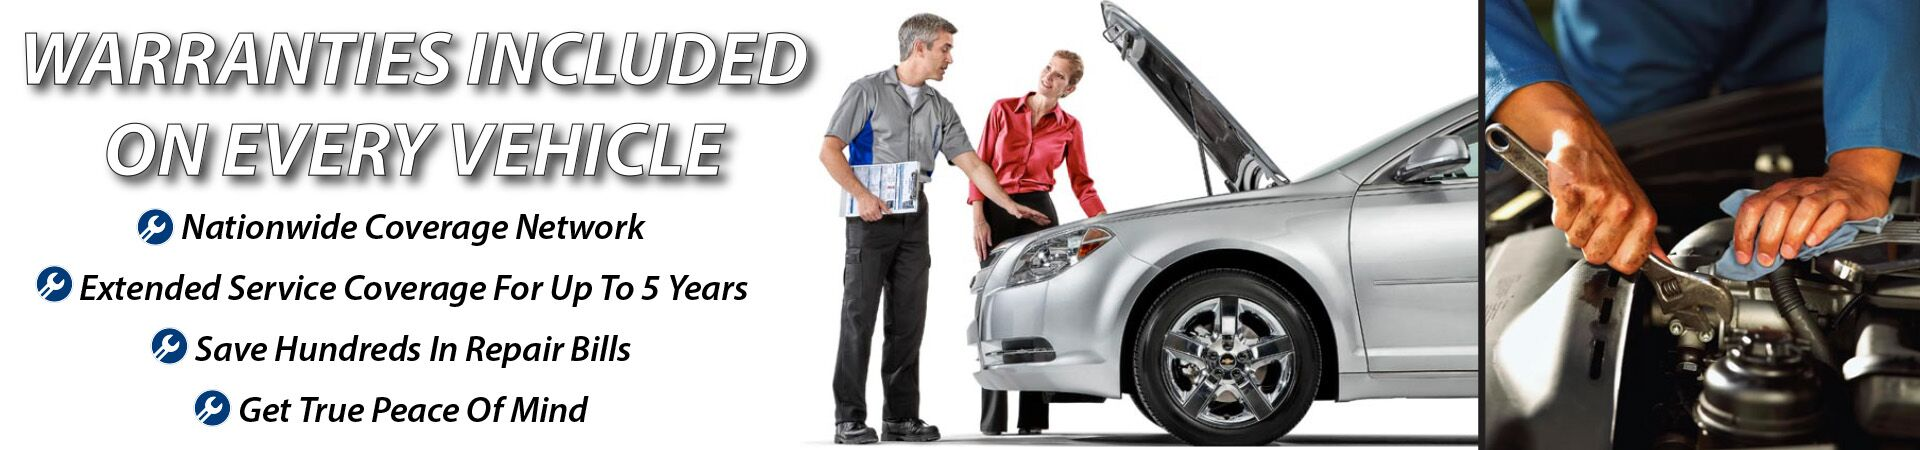 Warranties Included on Every Vehicle in  Virginia Beach, VA